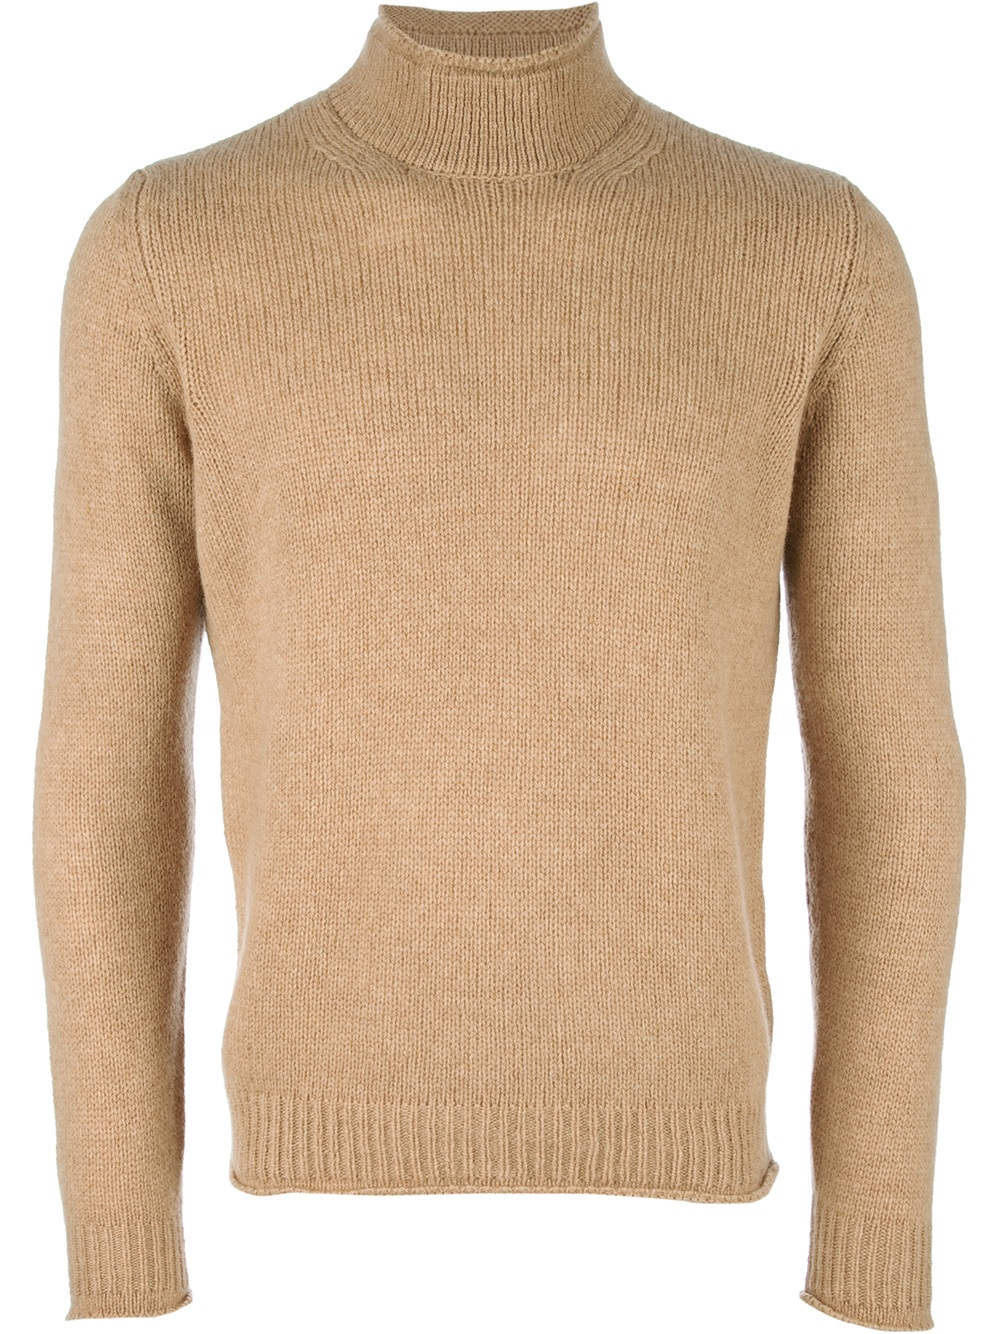 Roberto collina Turtleneck Sweater in Natural for Men | Lyst